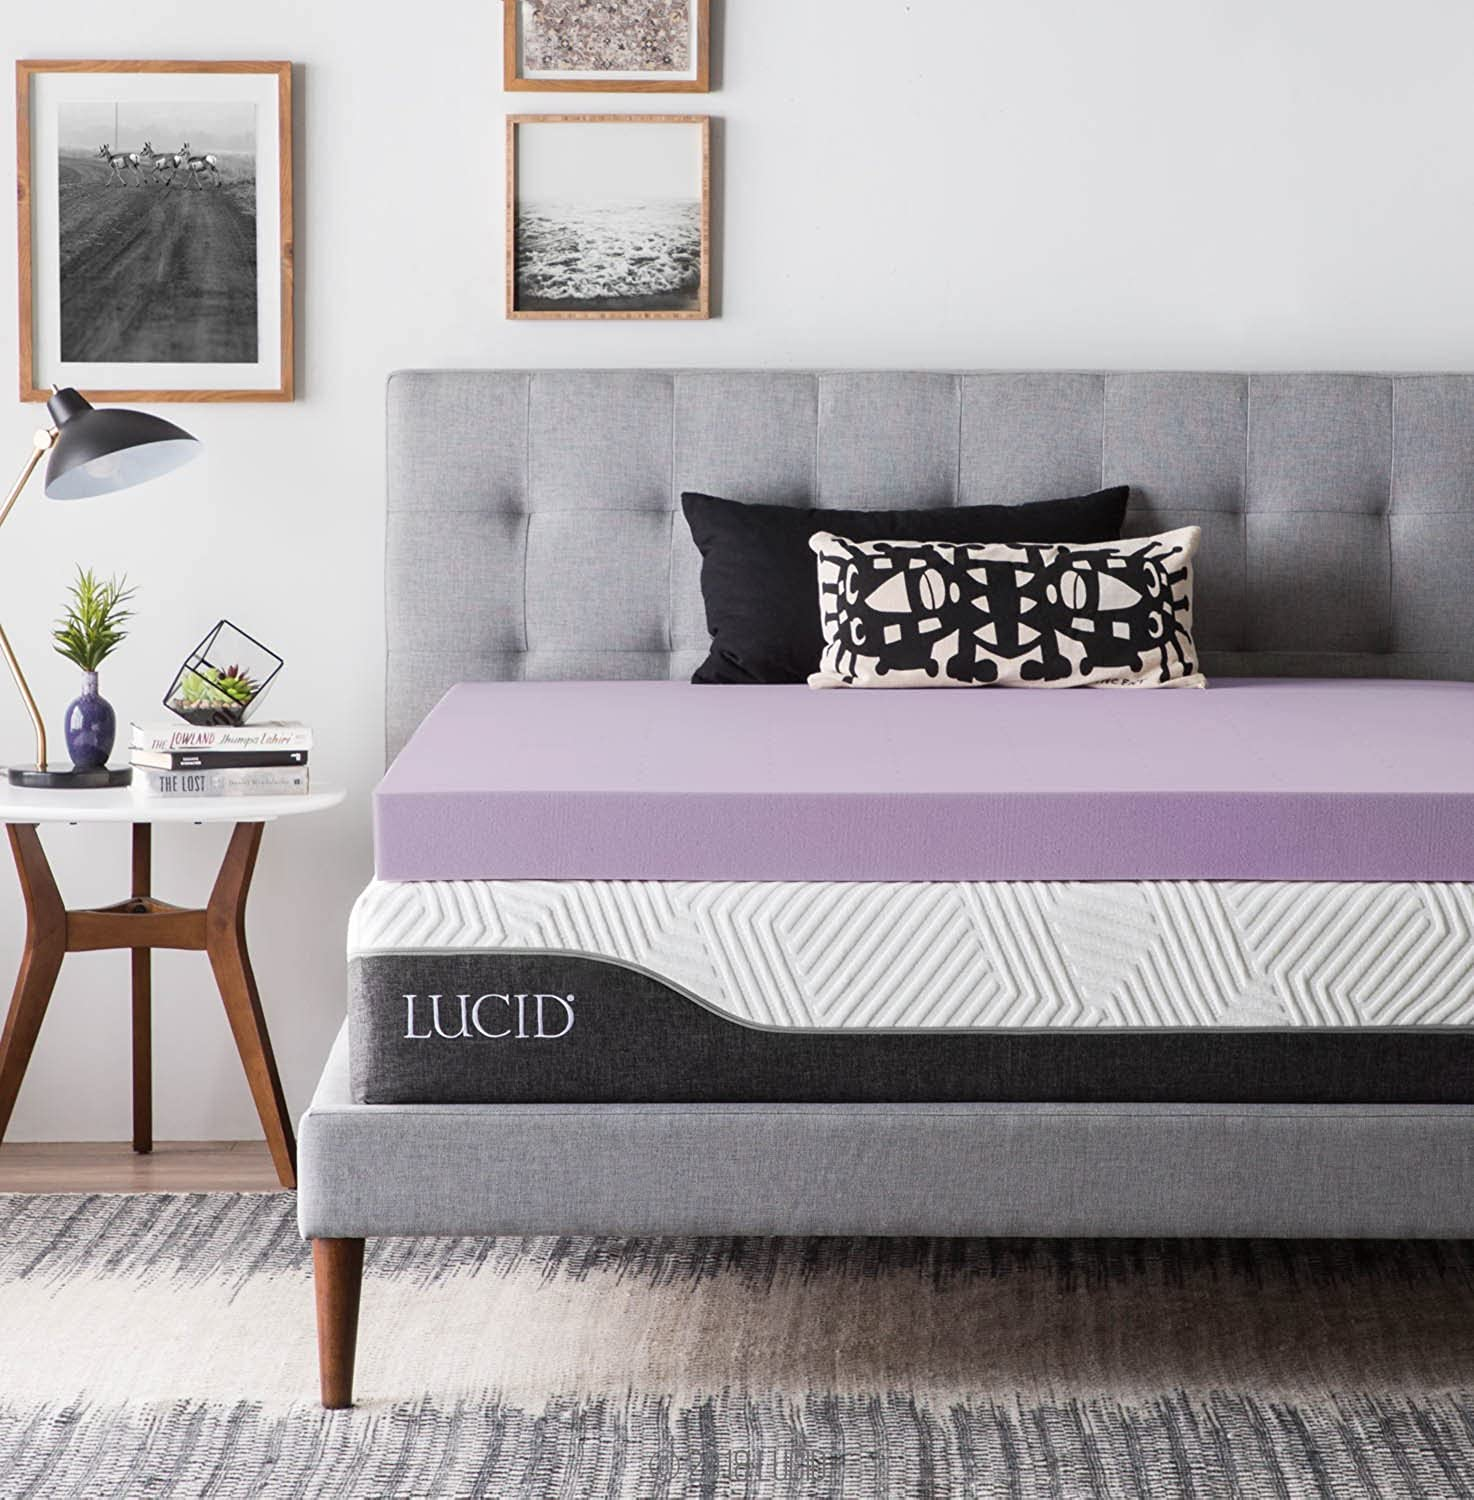 LUCID Ventilated Design 4 Inch Lavender Infused Memory Foam Mattress Topper, California King,